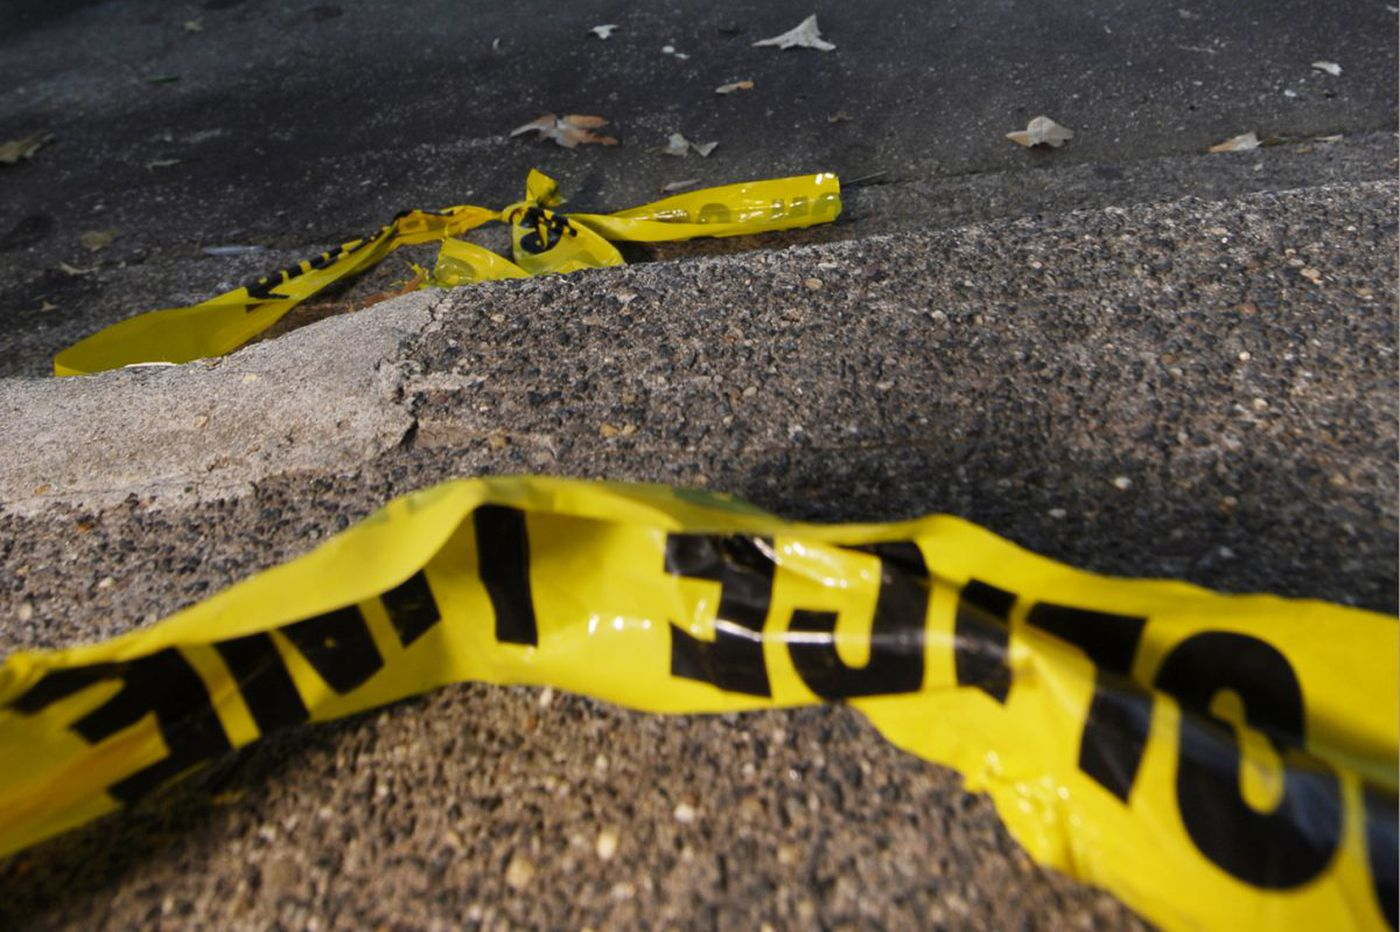 Philly man argued with a transgender woman before killing her, police say